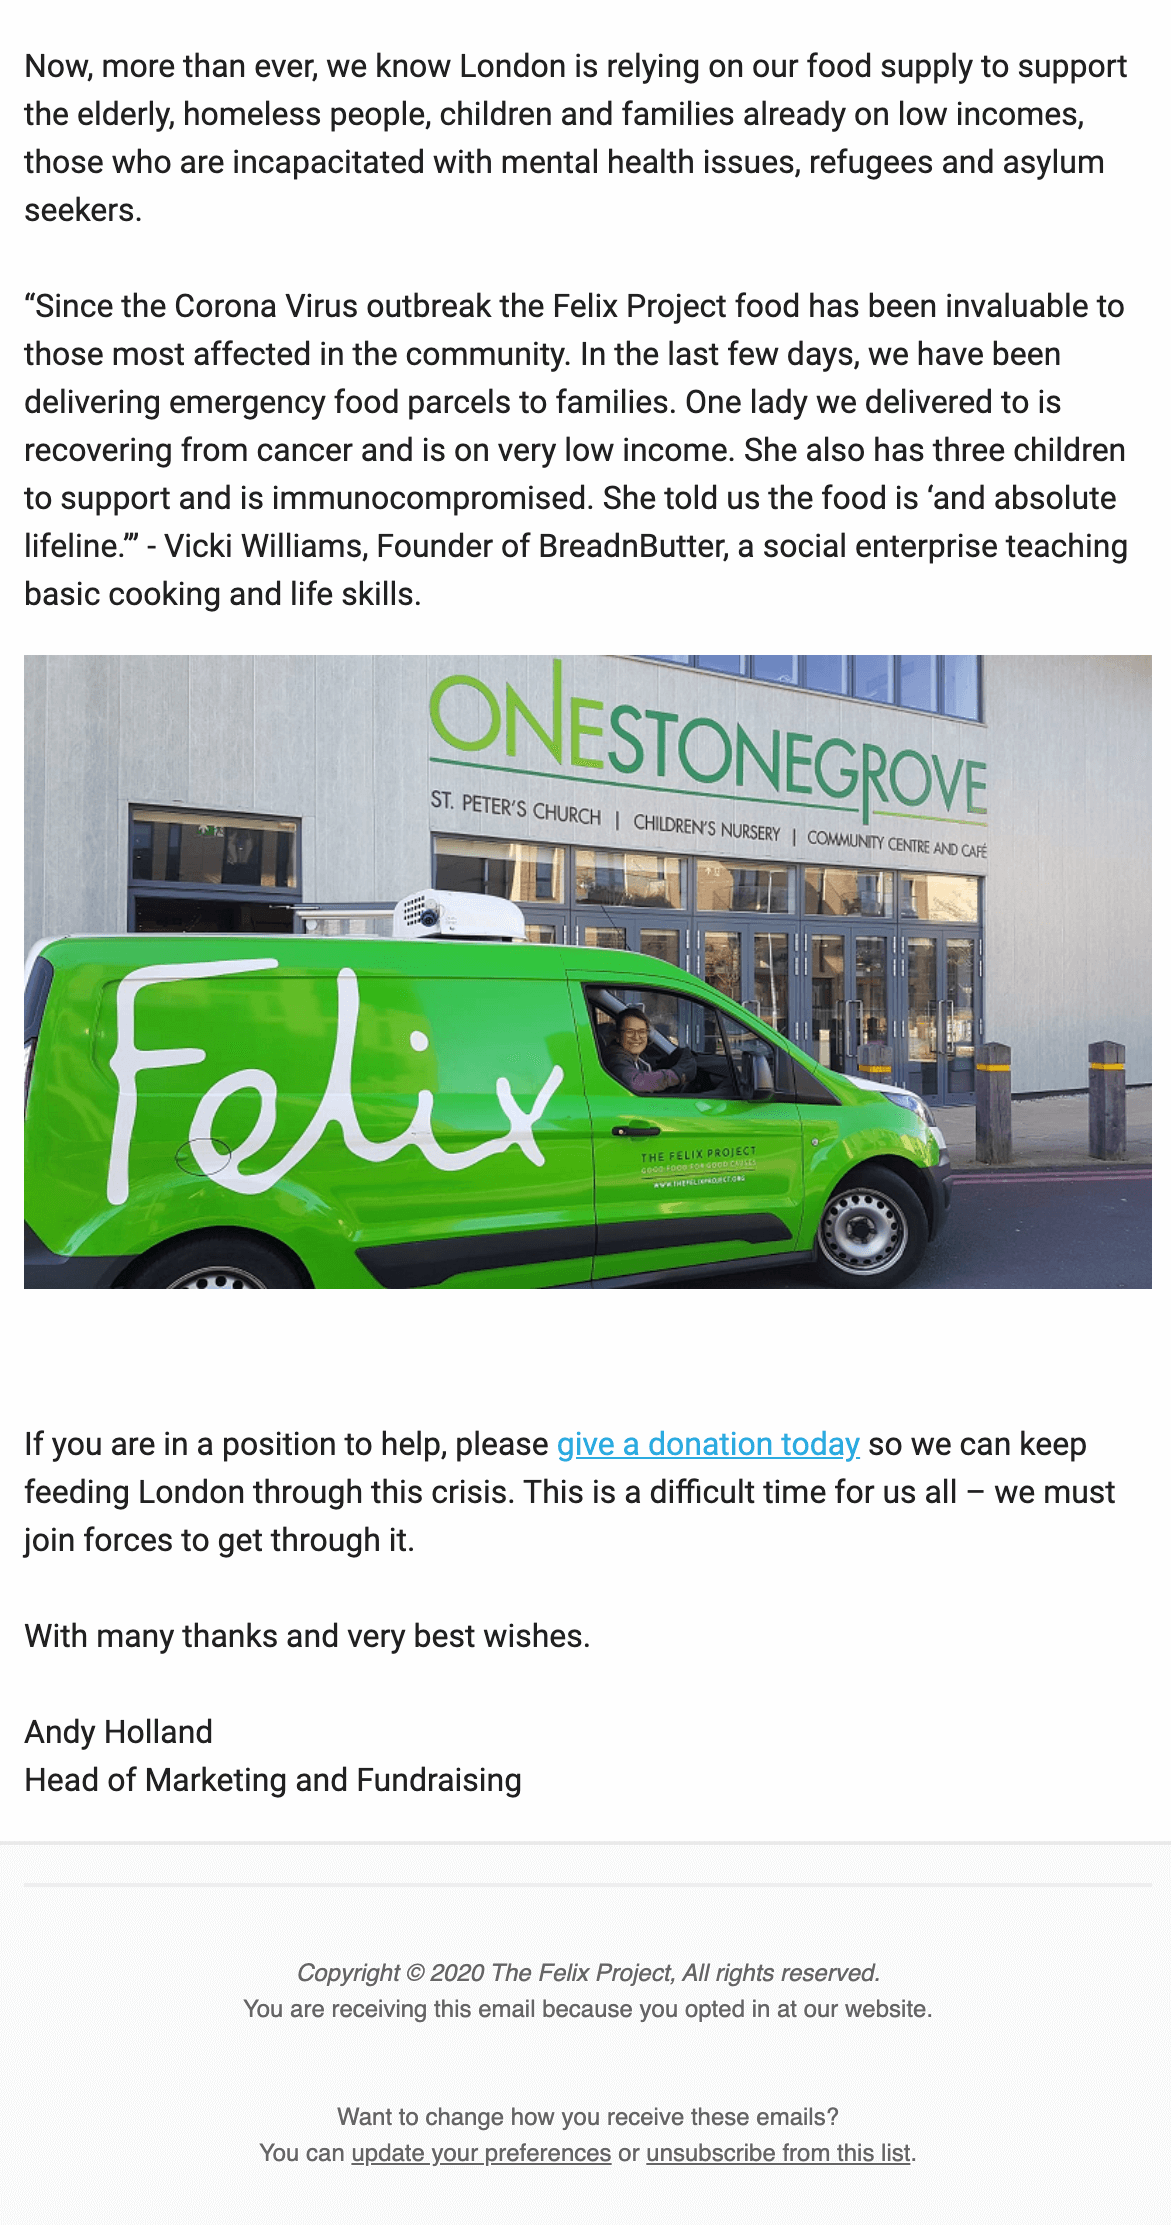 The second half of the Felix Project's welcome email includes a positive testimonial from an organisation they have worked with during the Coronavirus health crisis.